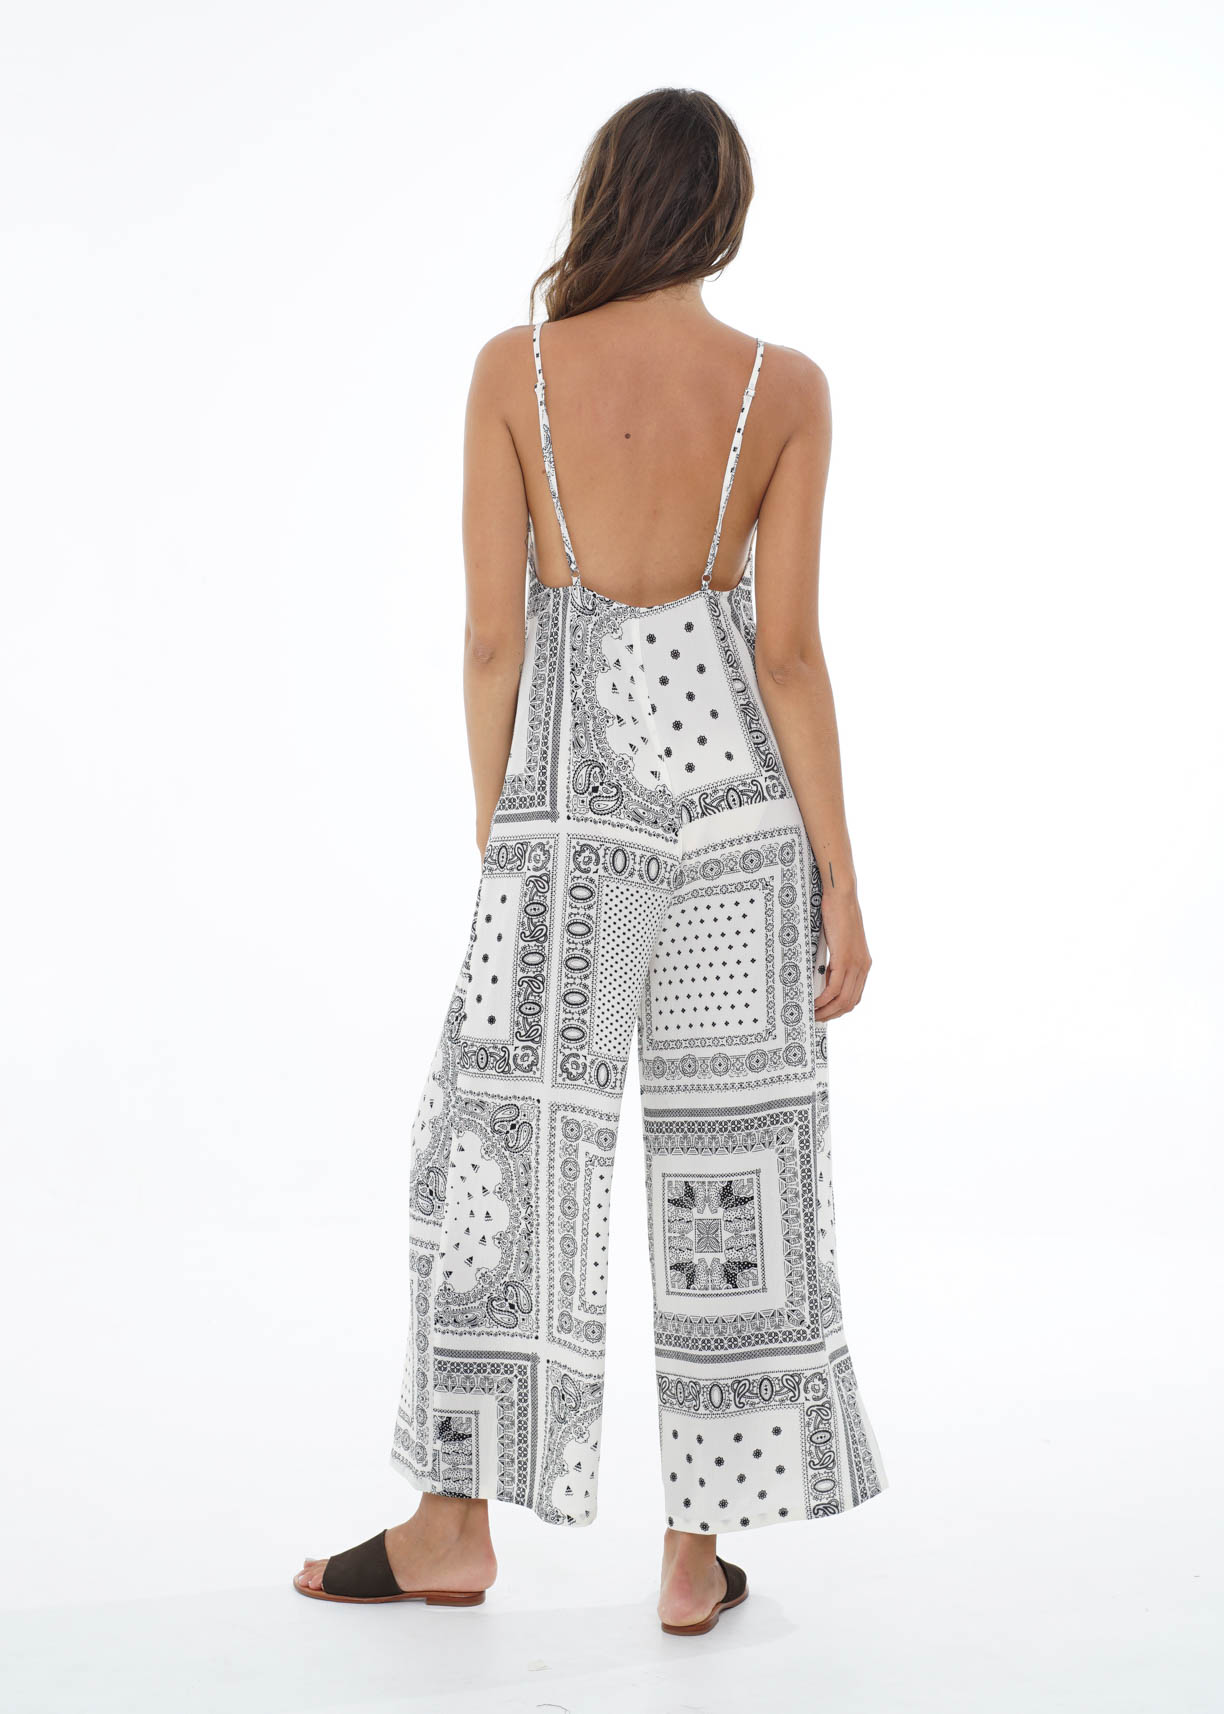 b488cf098665 DAZE DAYZ WHITE GYPSY JUMPSUIT │Curated Collections of Global ...